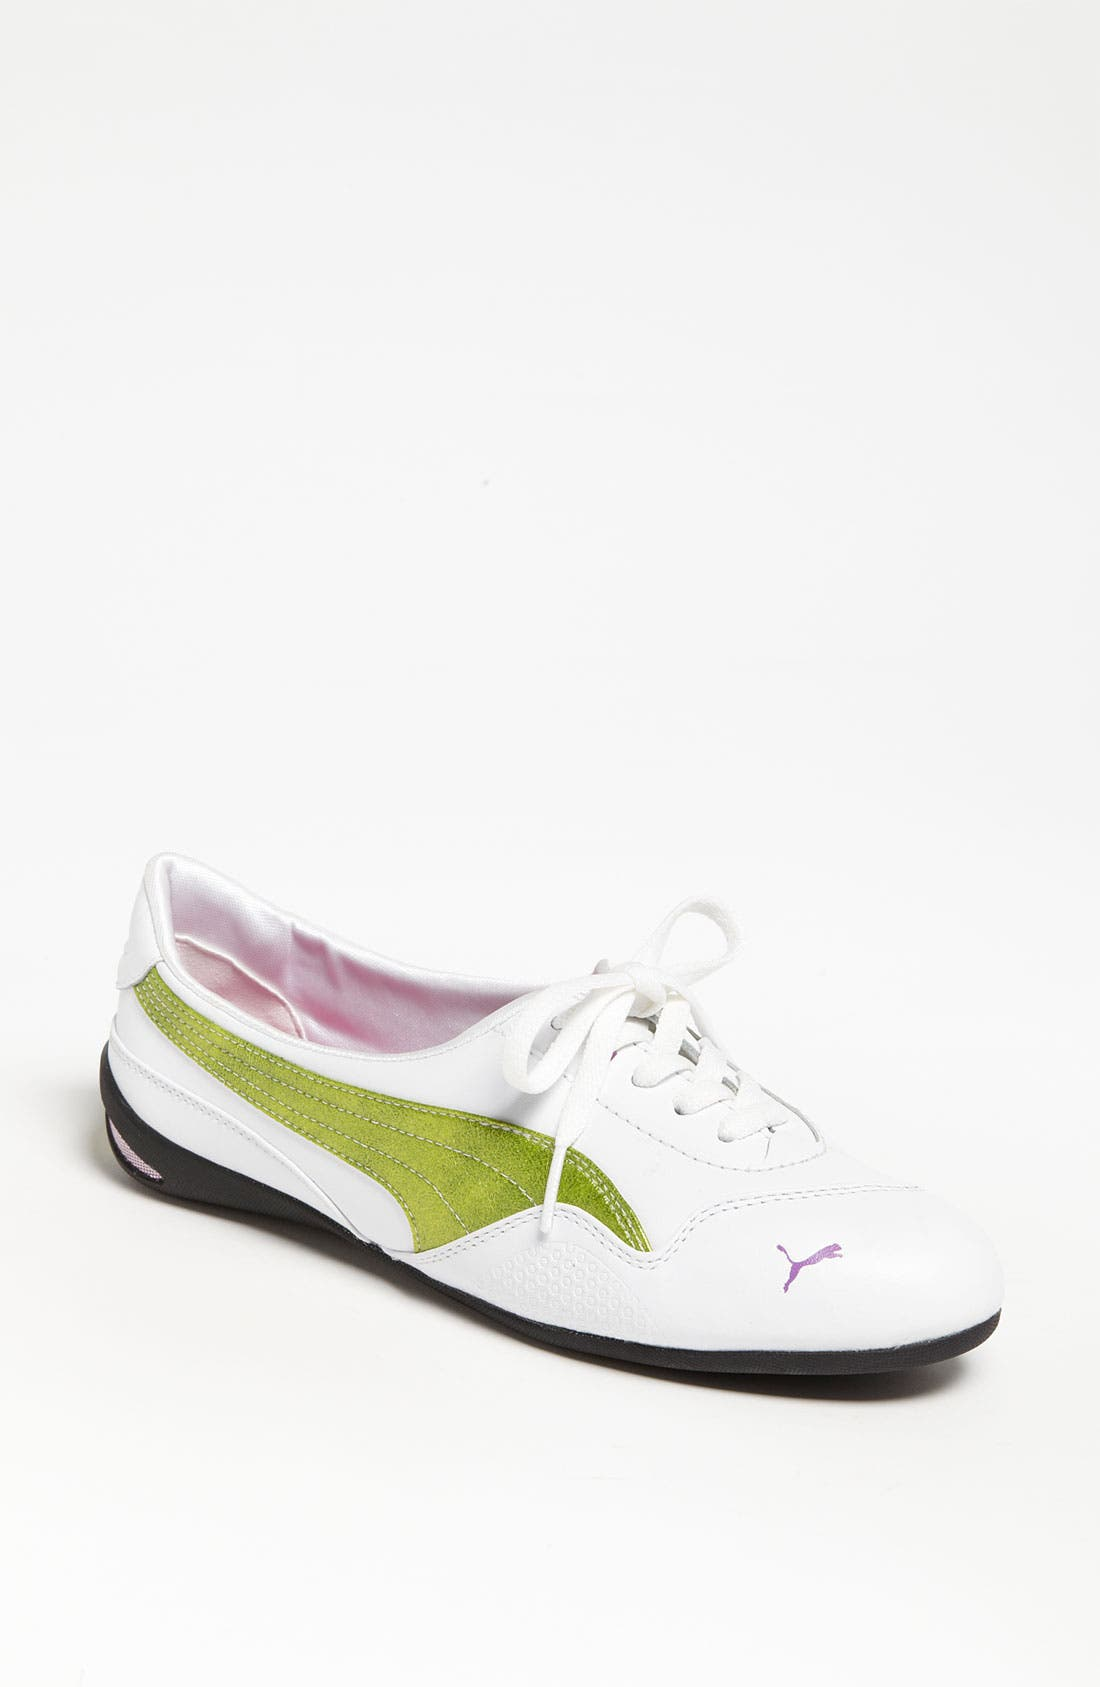 Alternate Image 1 Selected - PUMA 'Winning Diva' Sneaker